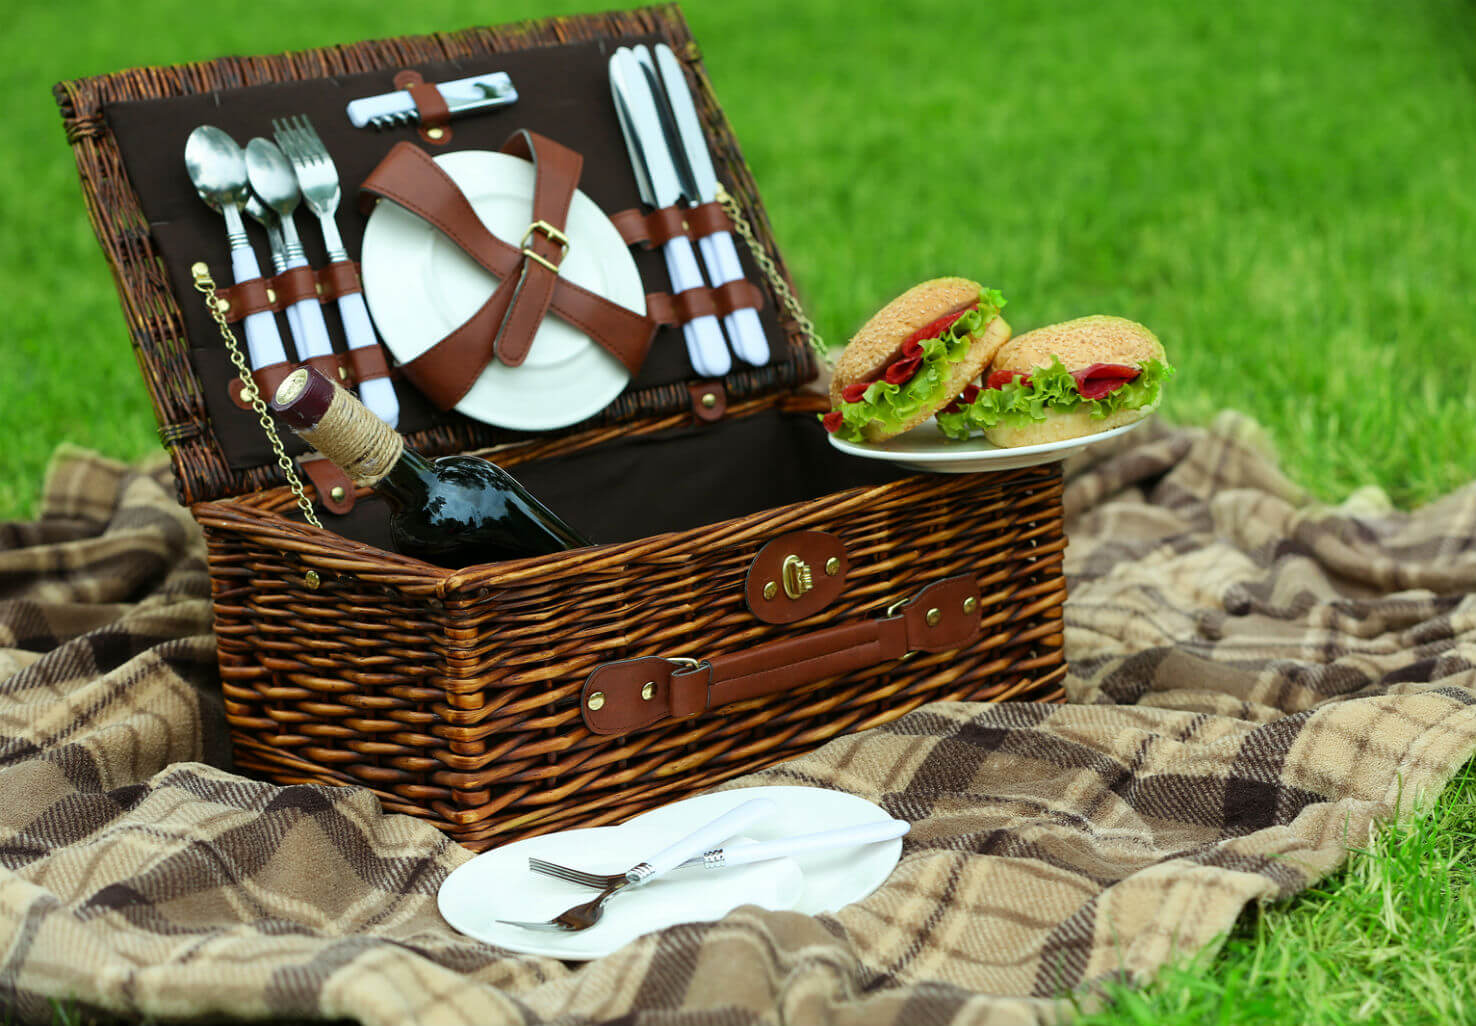 Picnic basket with sandwiches, wine, plates, and silverware